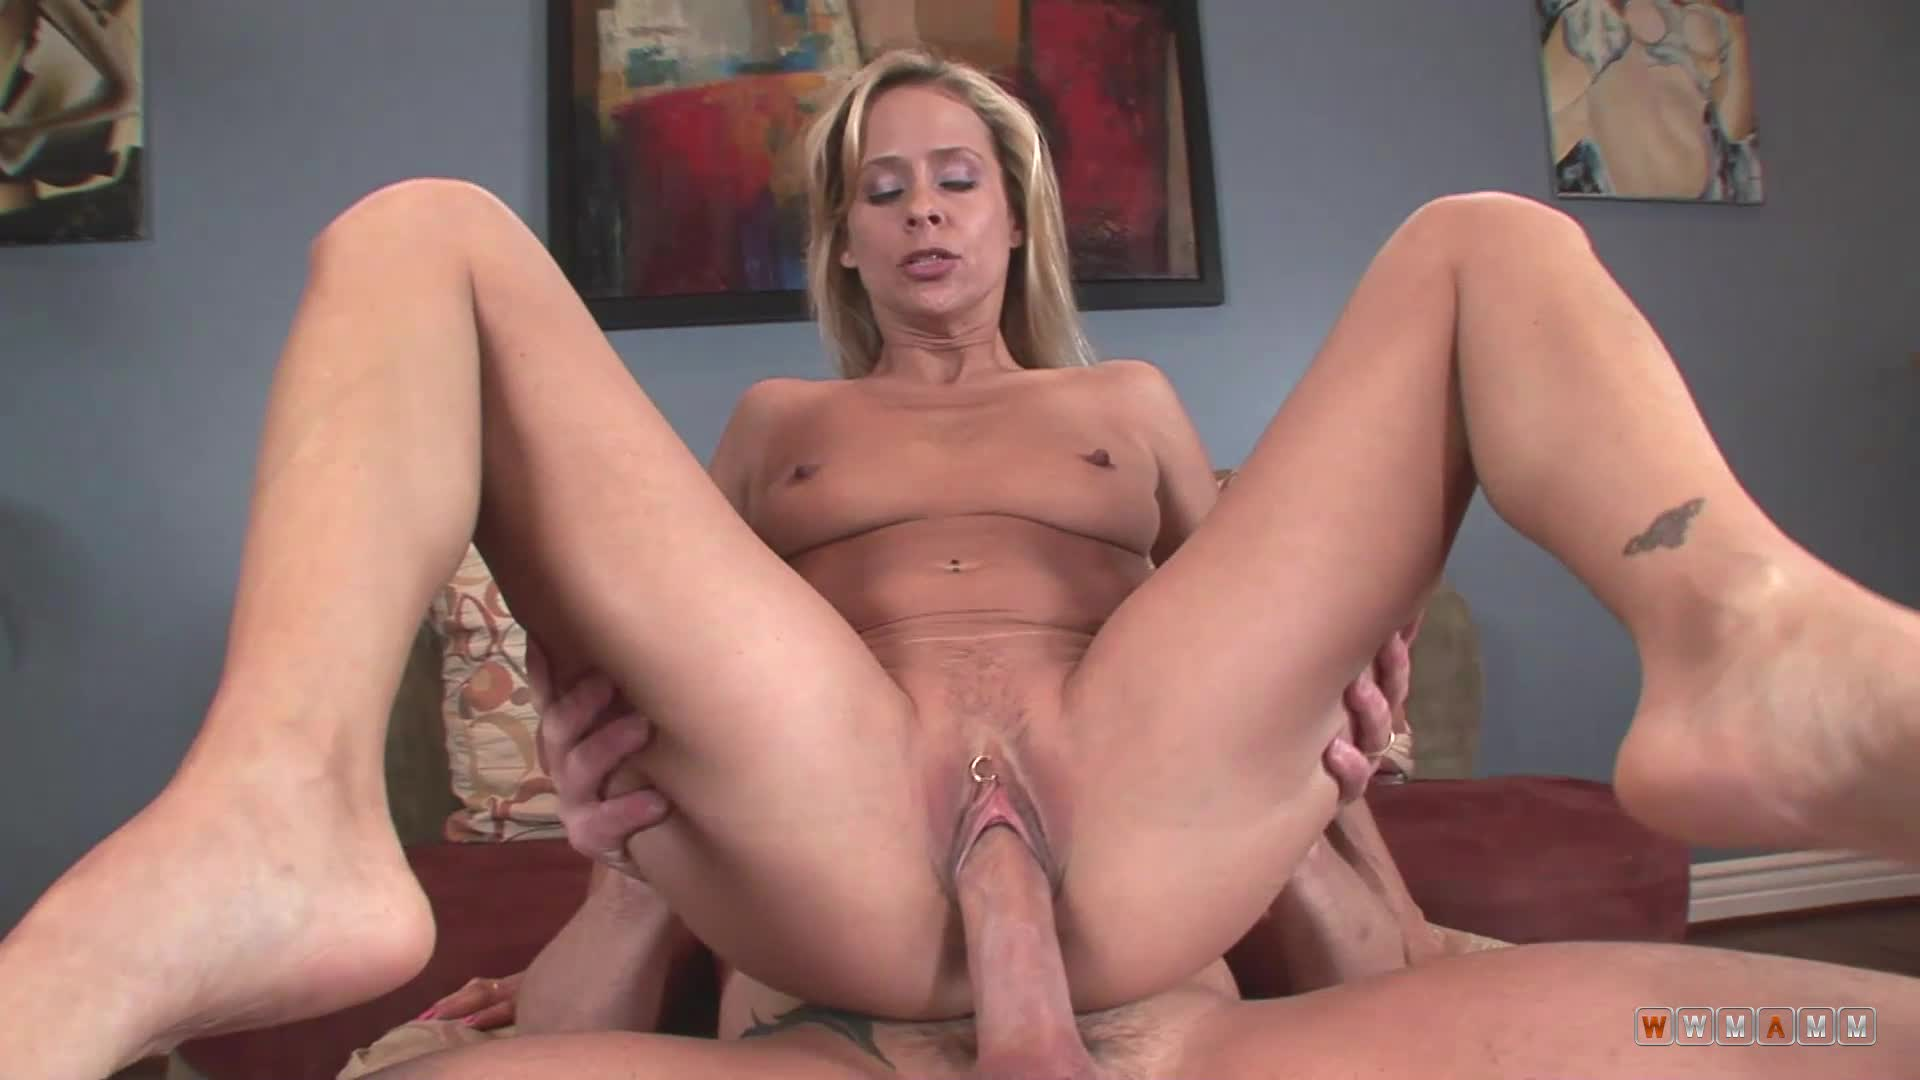 Blonde Gets Fucked Hard In Her Pussy And Ass By A Hard Cock